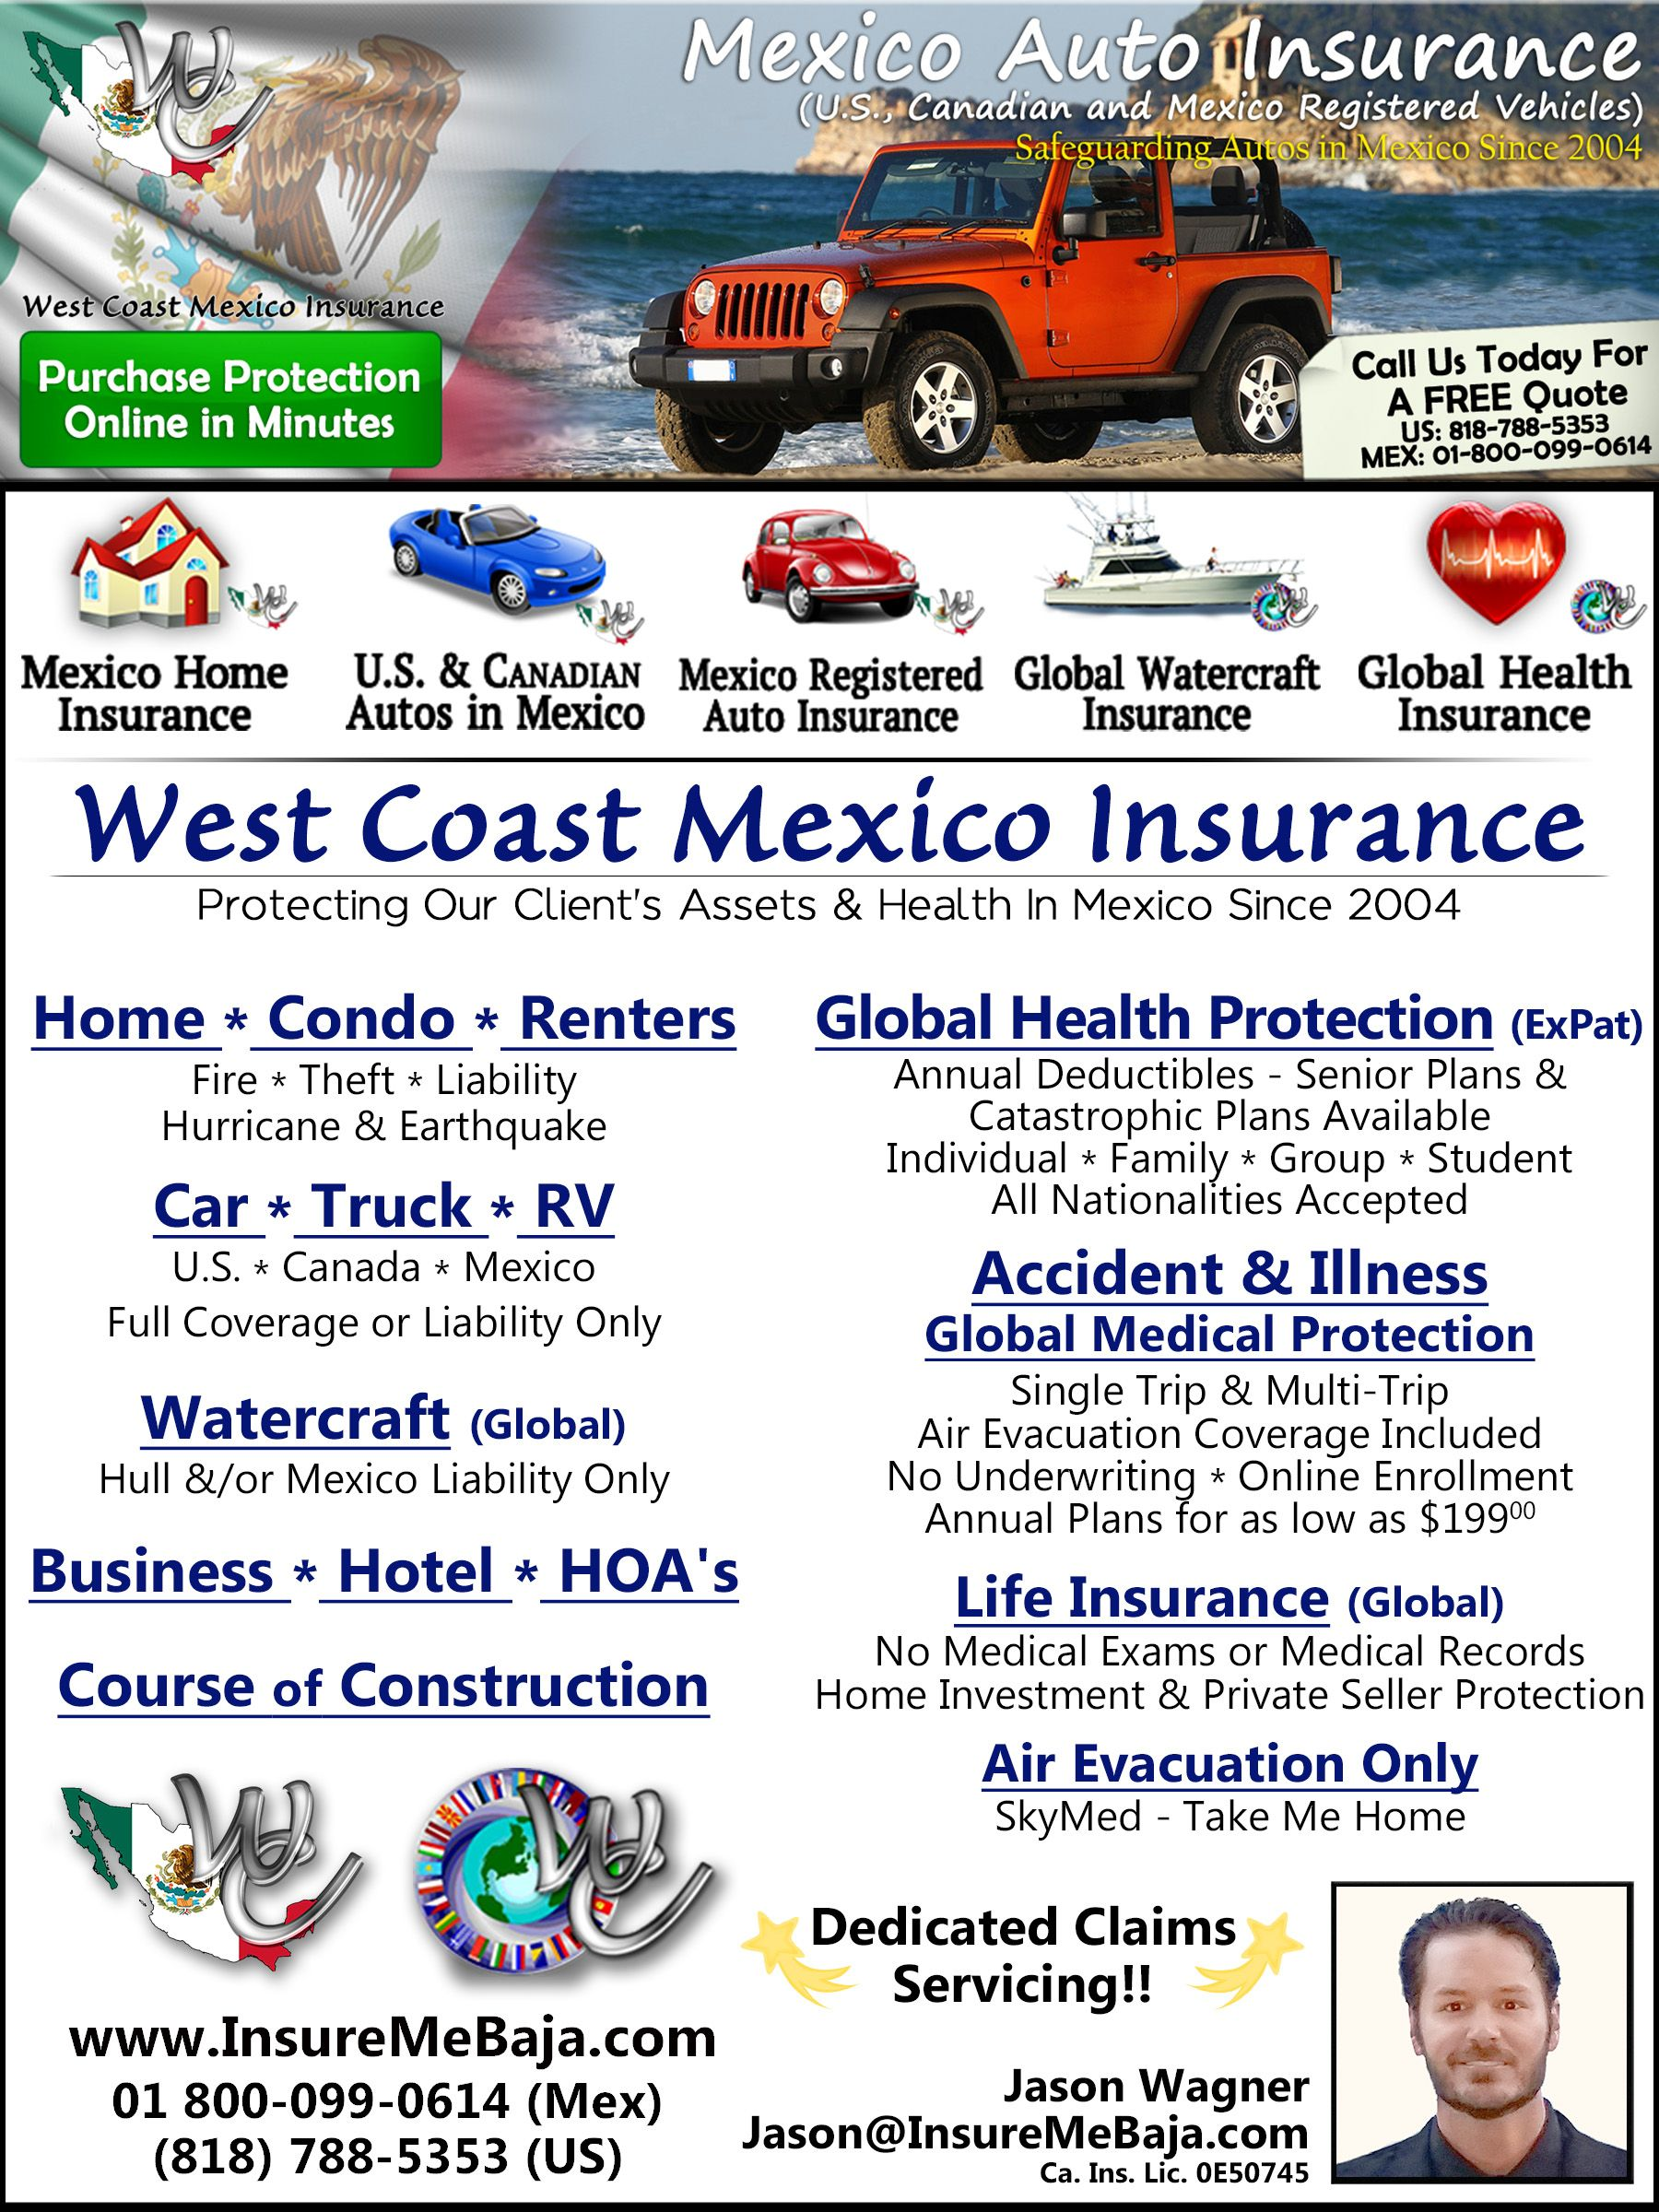 Online Mexico Auto Insurance Get Pricing From The Top 5 Insurance